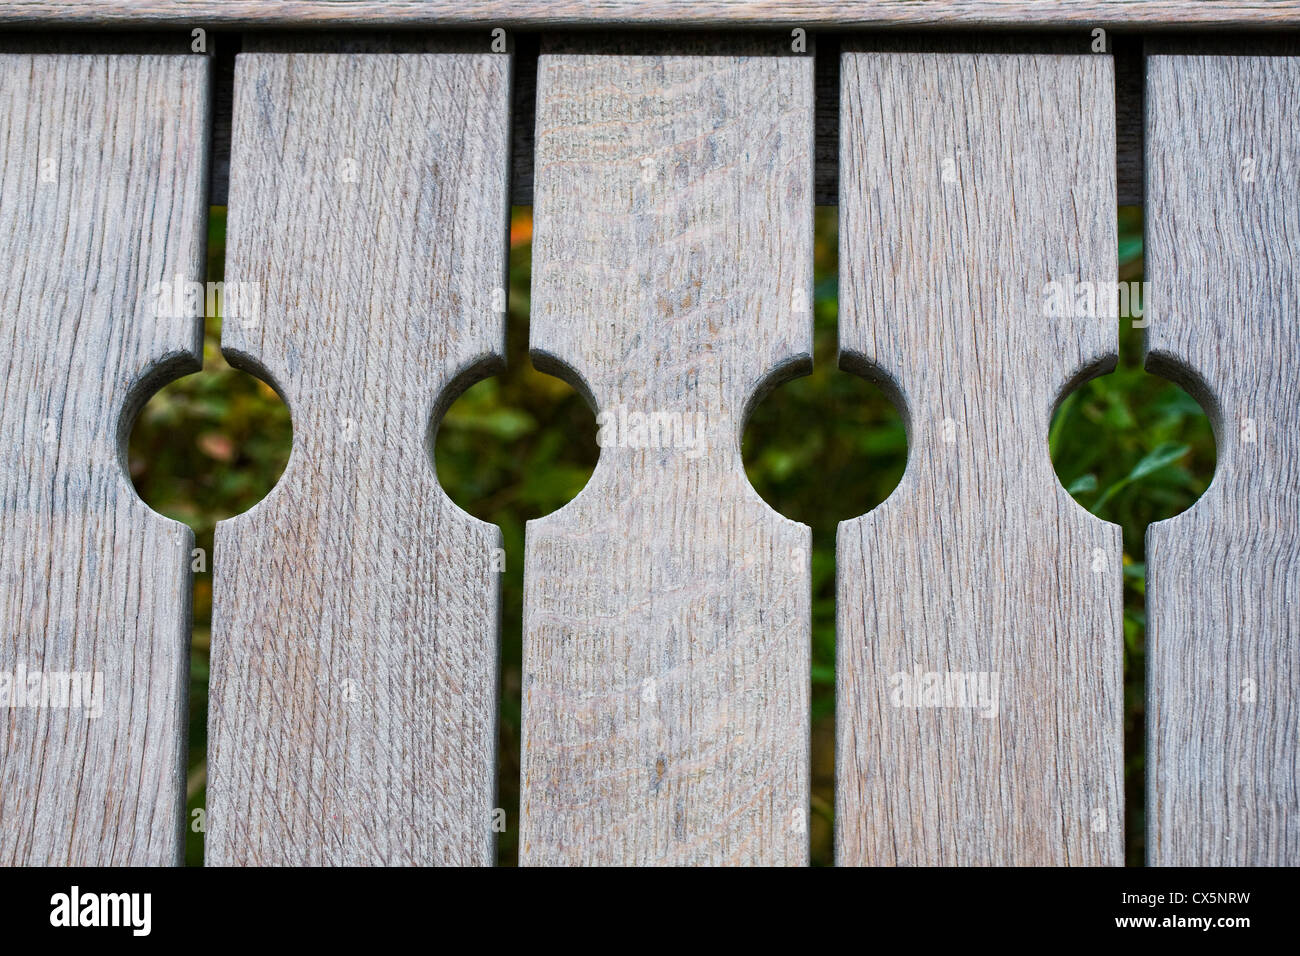 Wooden bench pattern. - Stock Image